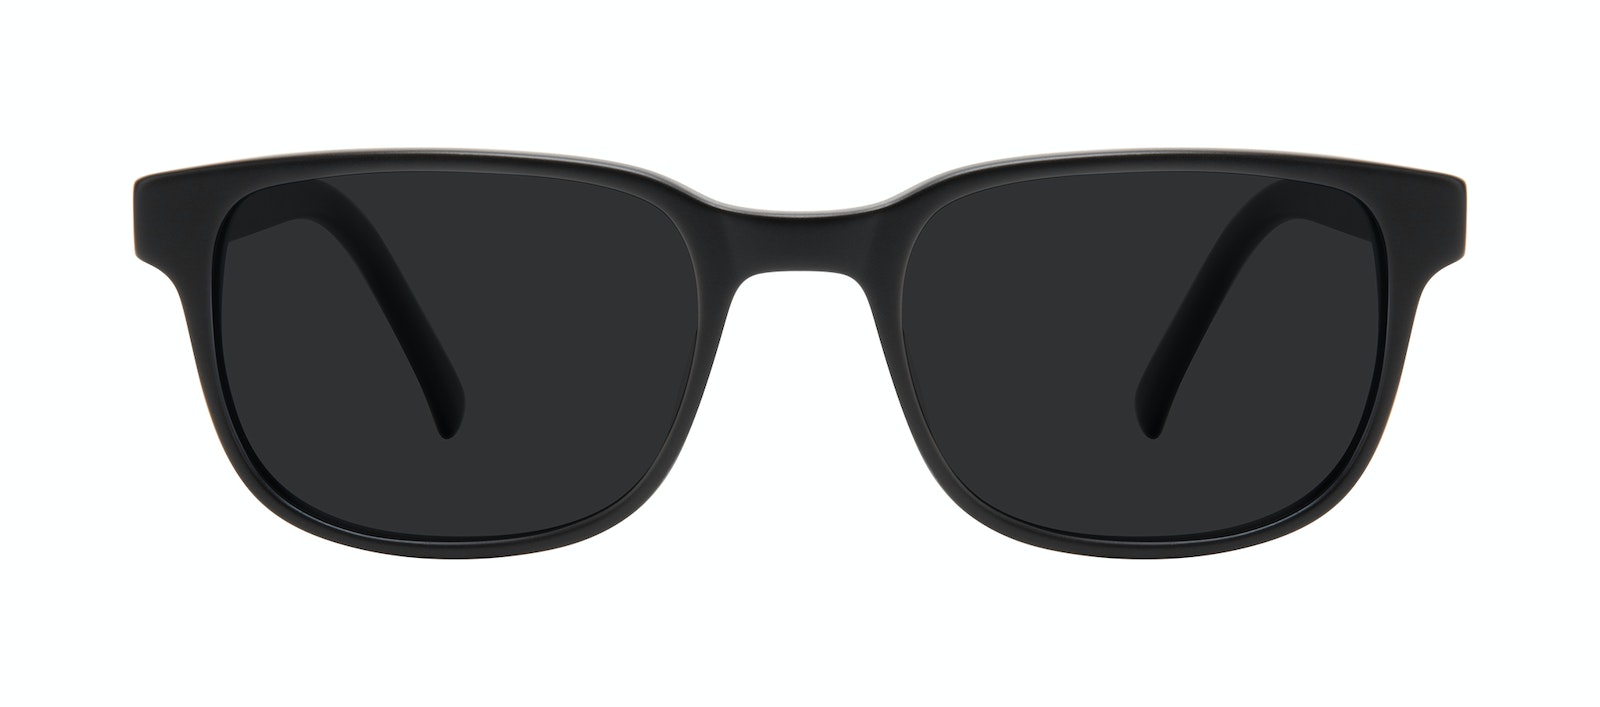 Affordable Fashion Glasses Square Sunglasses Men Role Black Matte Front